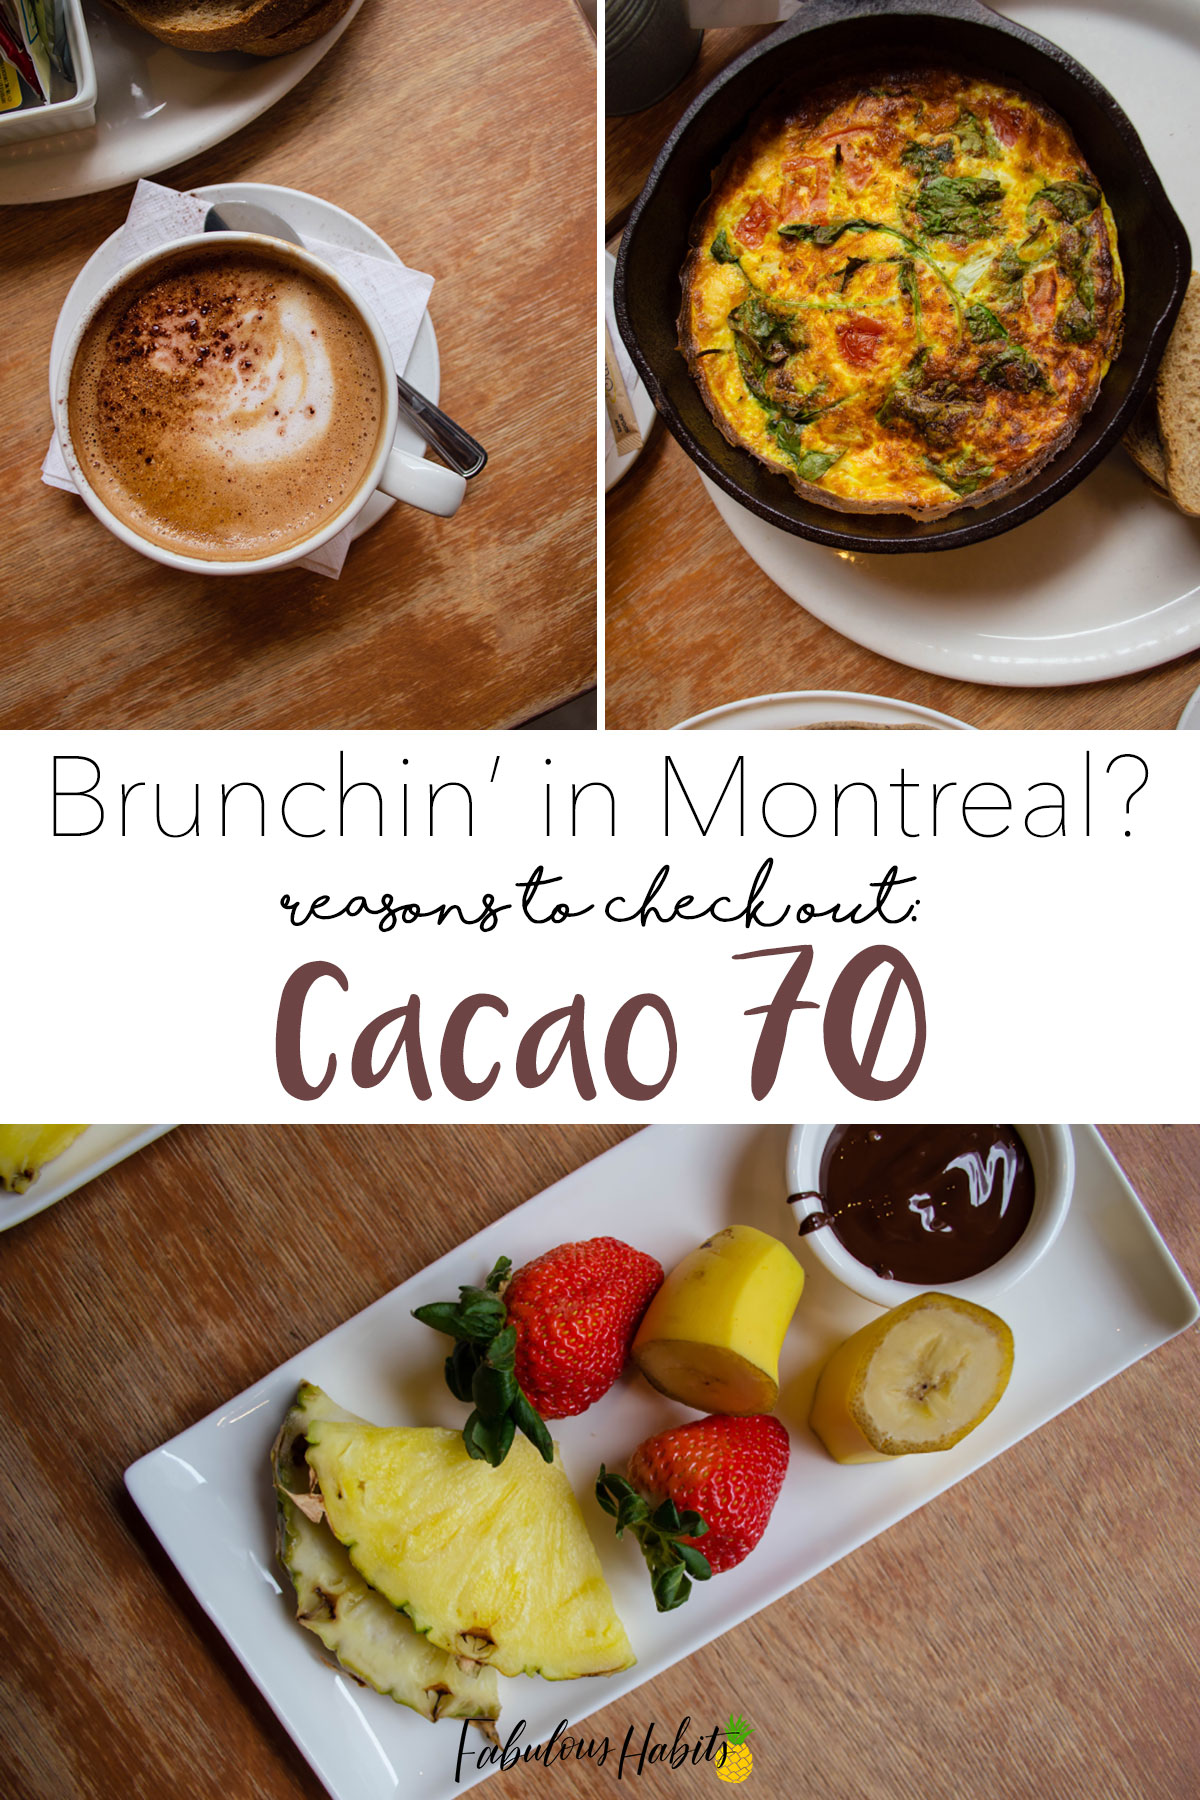 Having brunch at one of Montreal's most popular restaurants: Cacao70. Satisfy your sweet craving at their well-established resto!